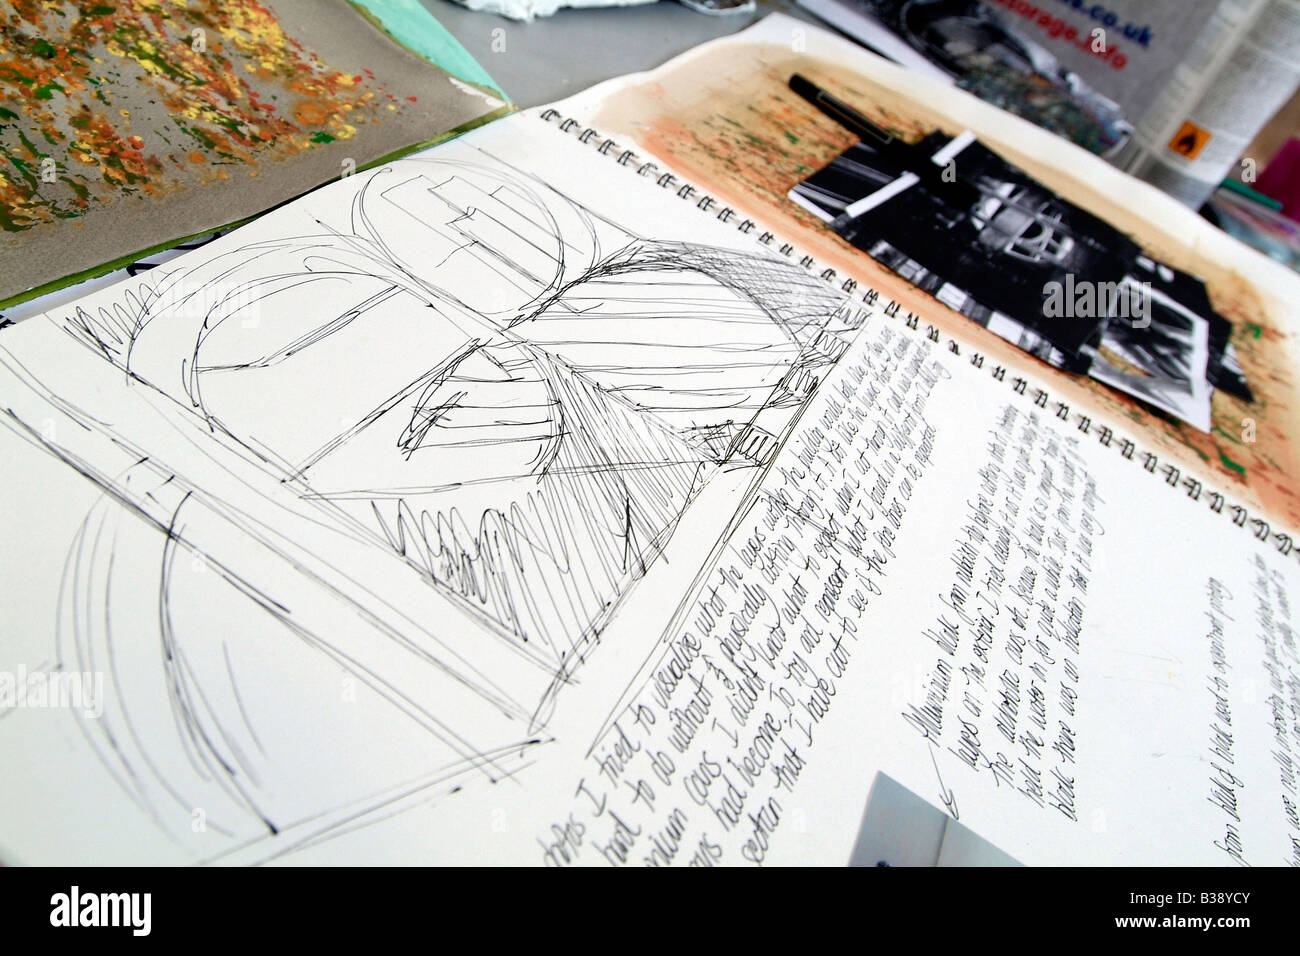 Close-up of art student's sketch book with pencil illustration of building - Stock Image